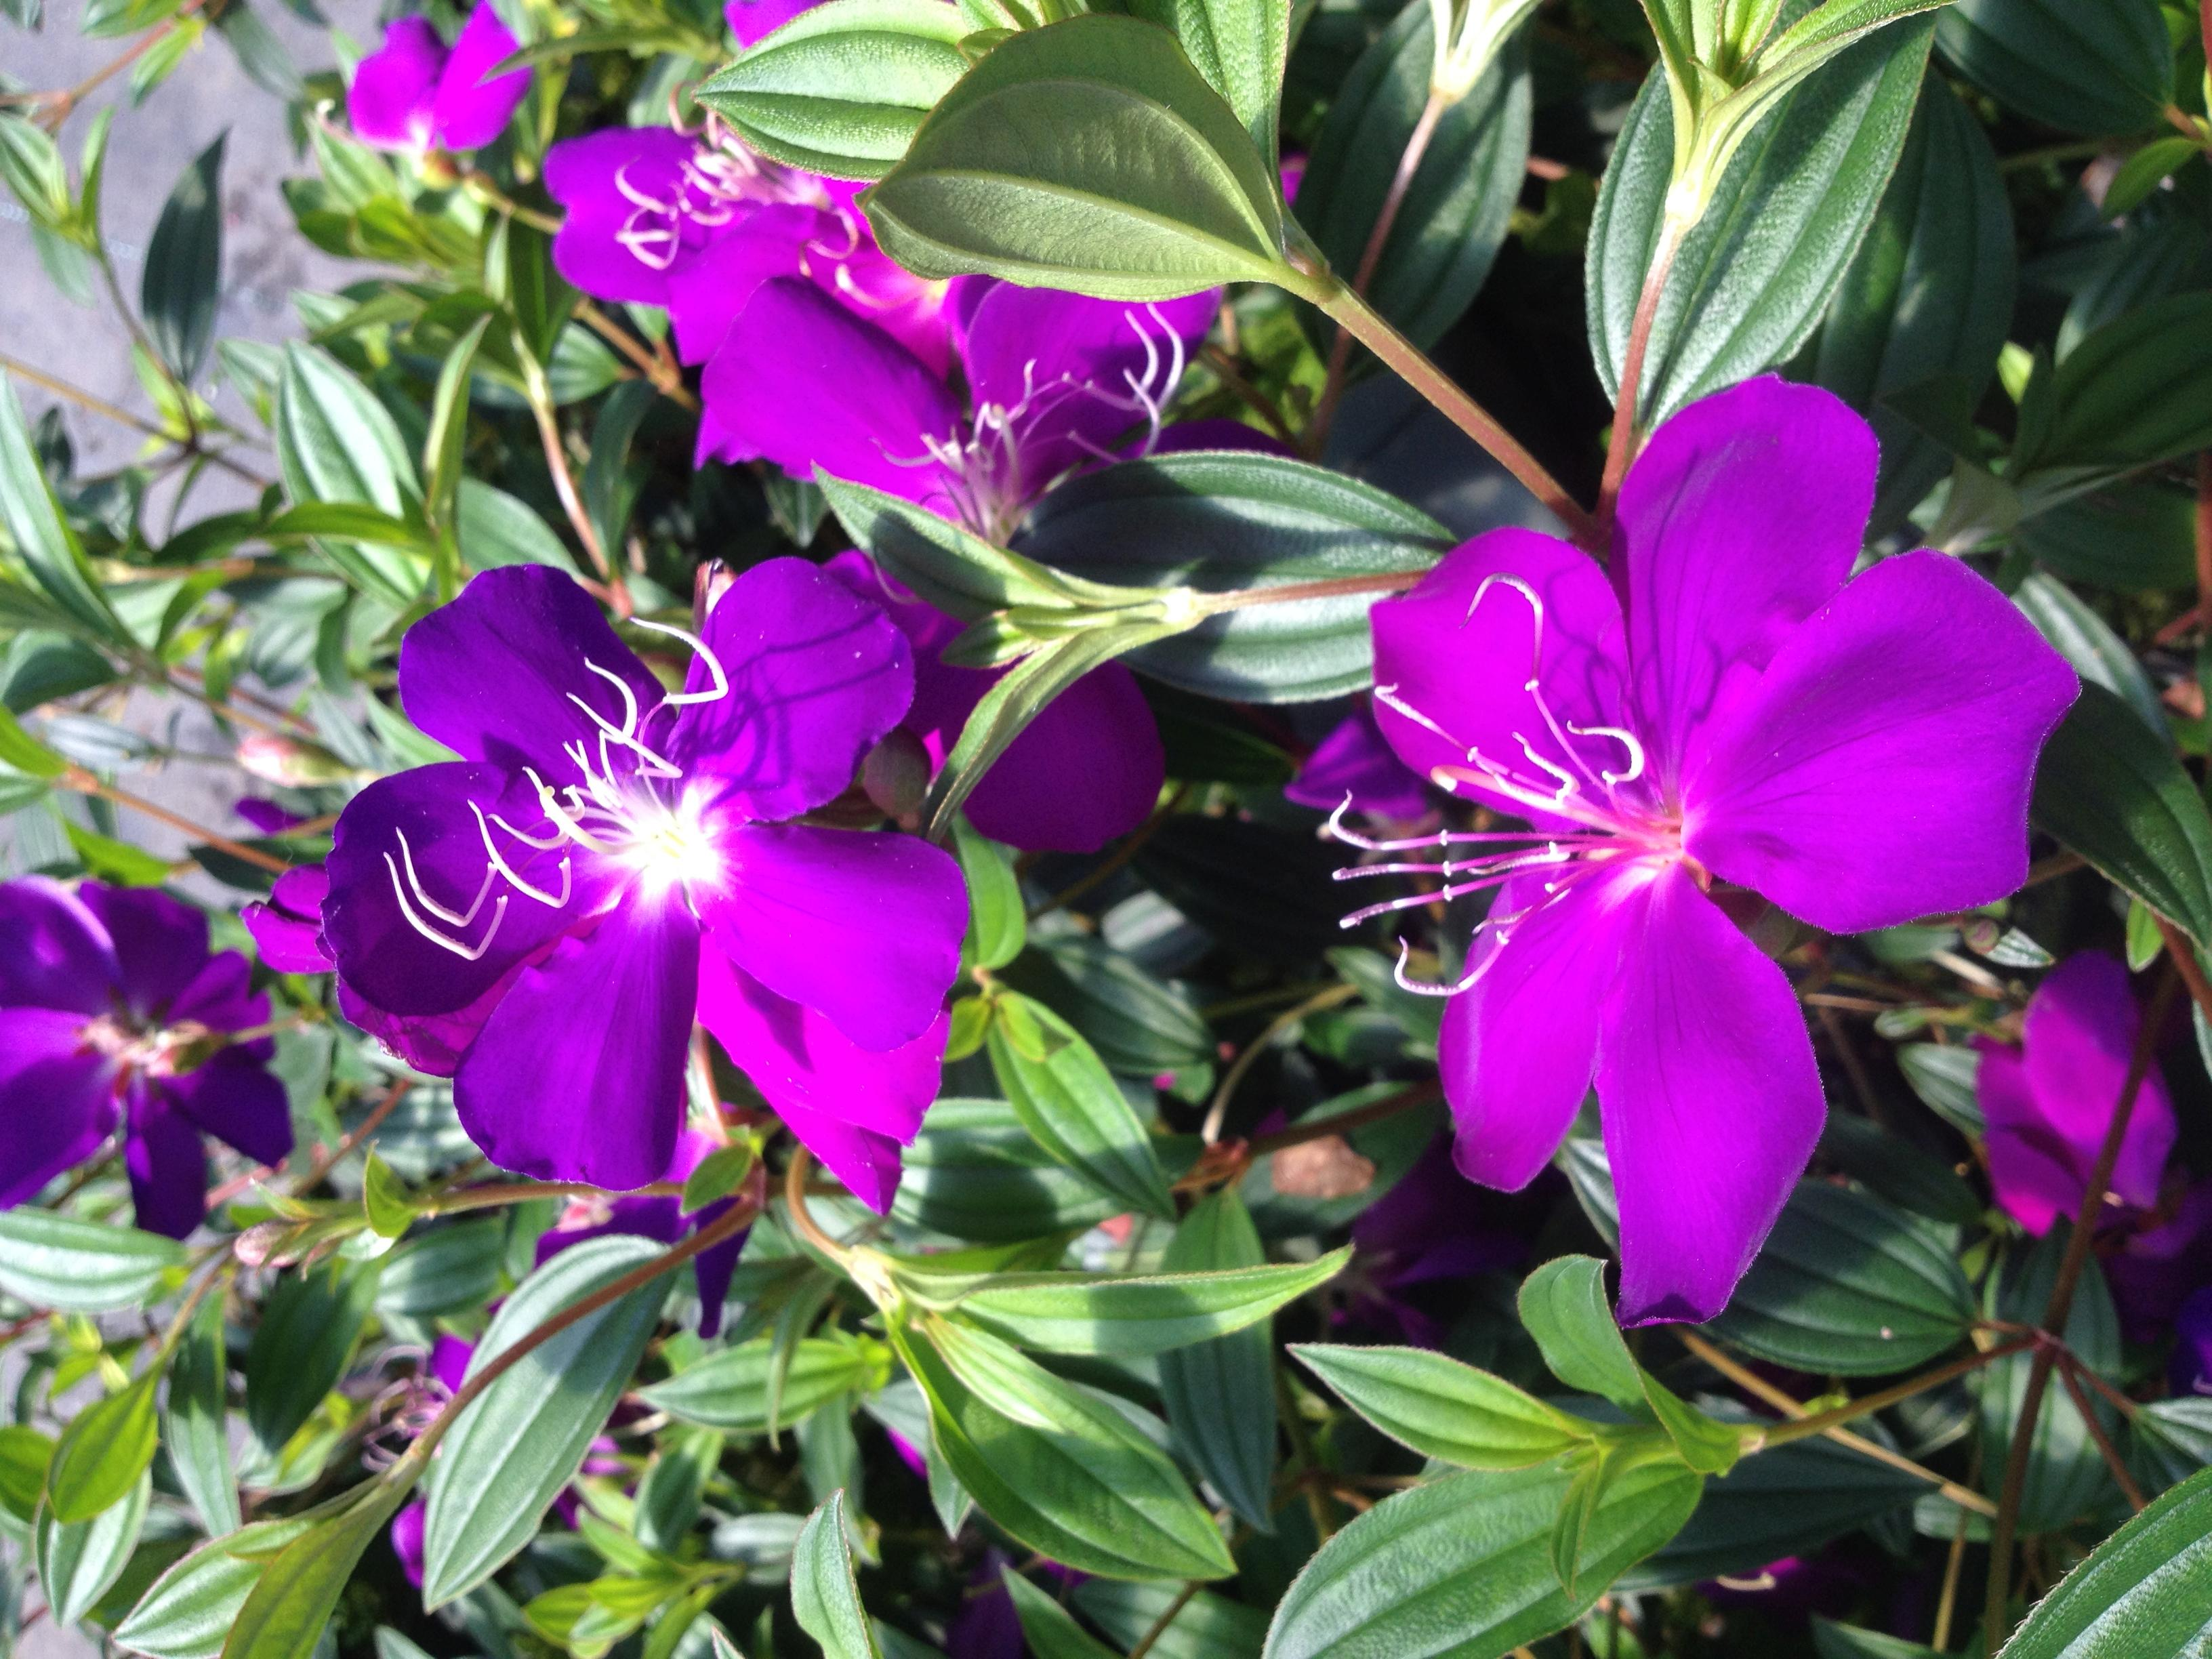 Ecuador princess tibouchina bush live tropical plant purple flower ecuador princess tibouchina bush live tropical plant purple flower starter size 4 inch pot emerald tm mightylinksfo